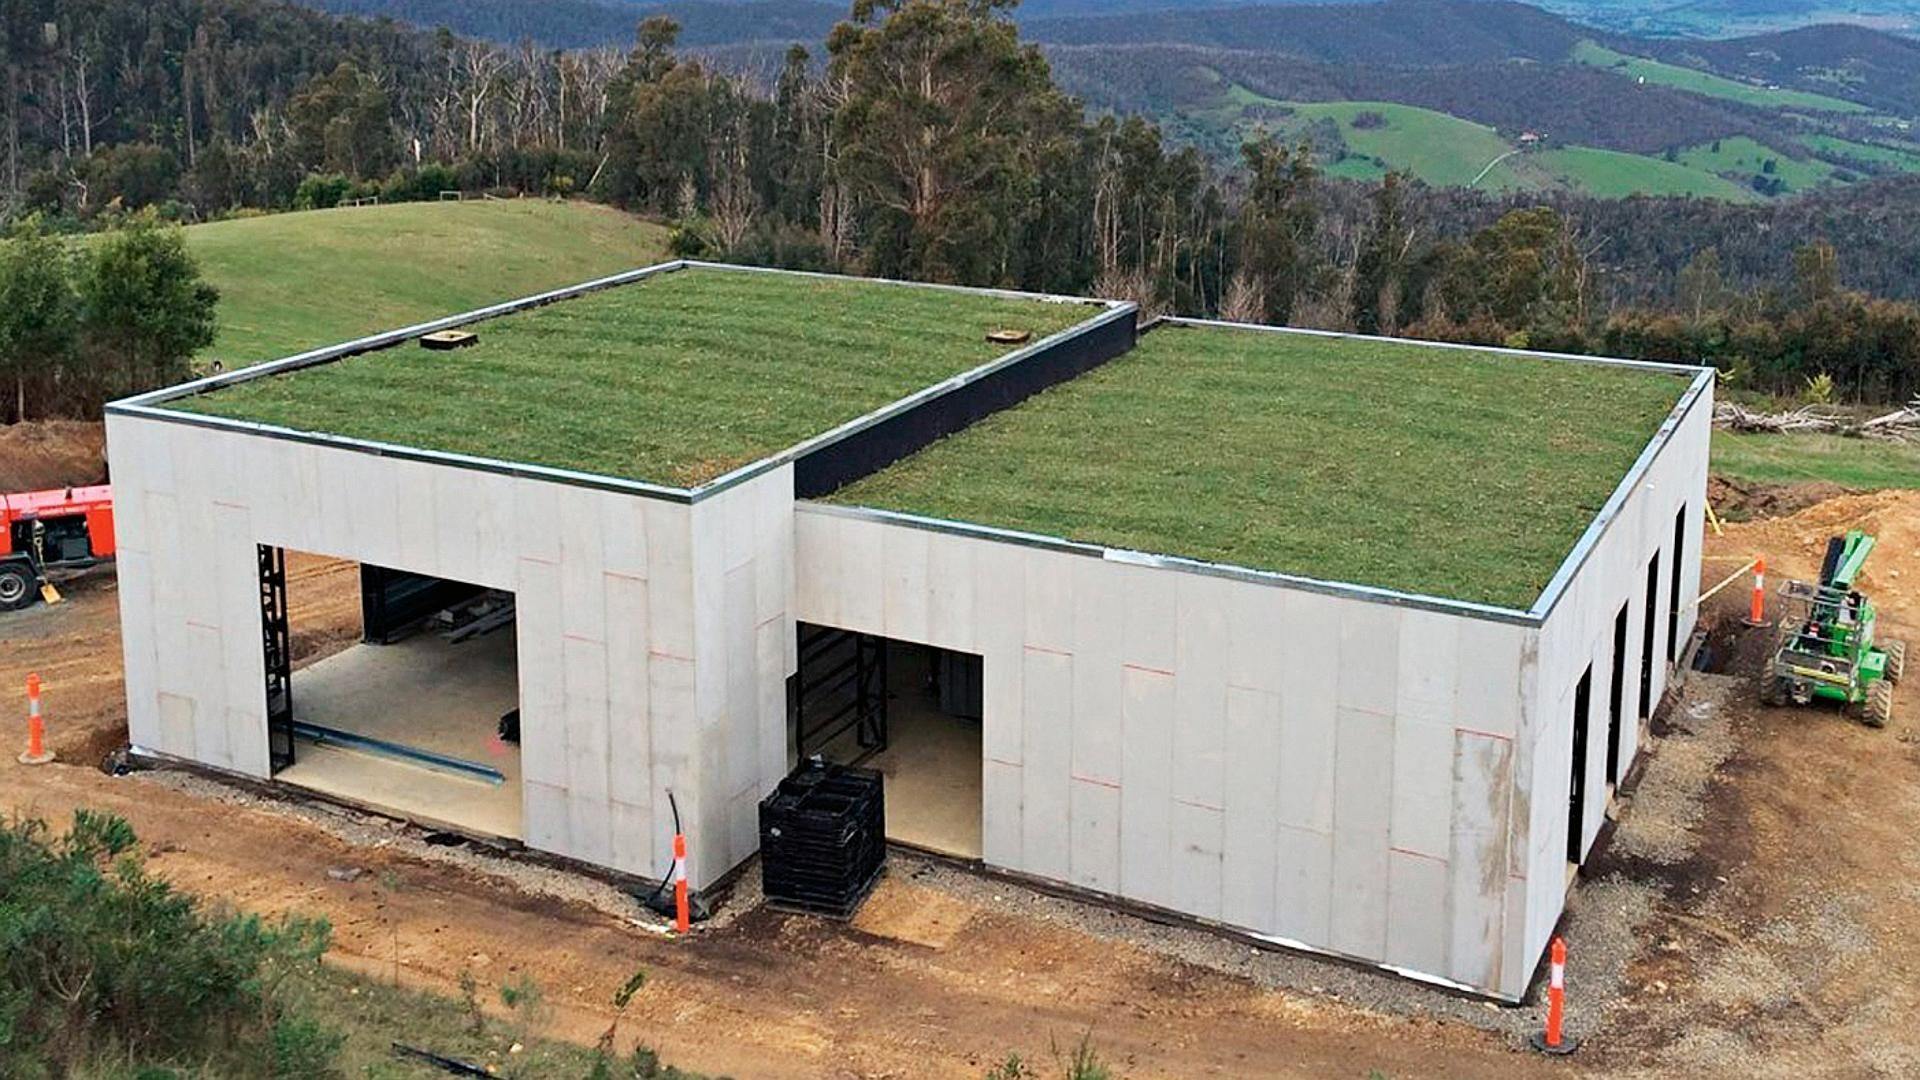 24 Ideas Container House Design Ideas Green Roofs For Green Roof Bush Fire Proof House Joost Bakker House Green Roof House Container House Green Roof